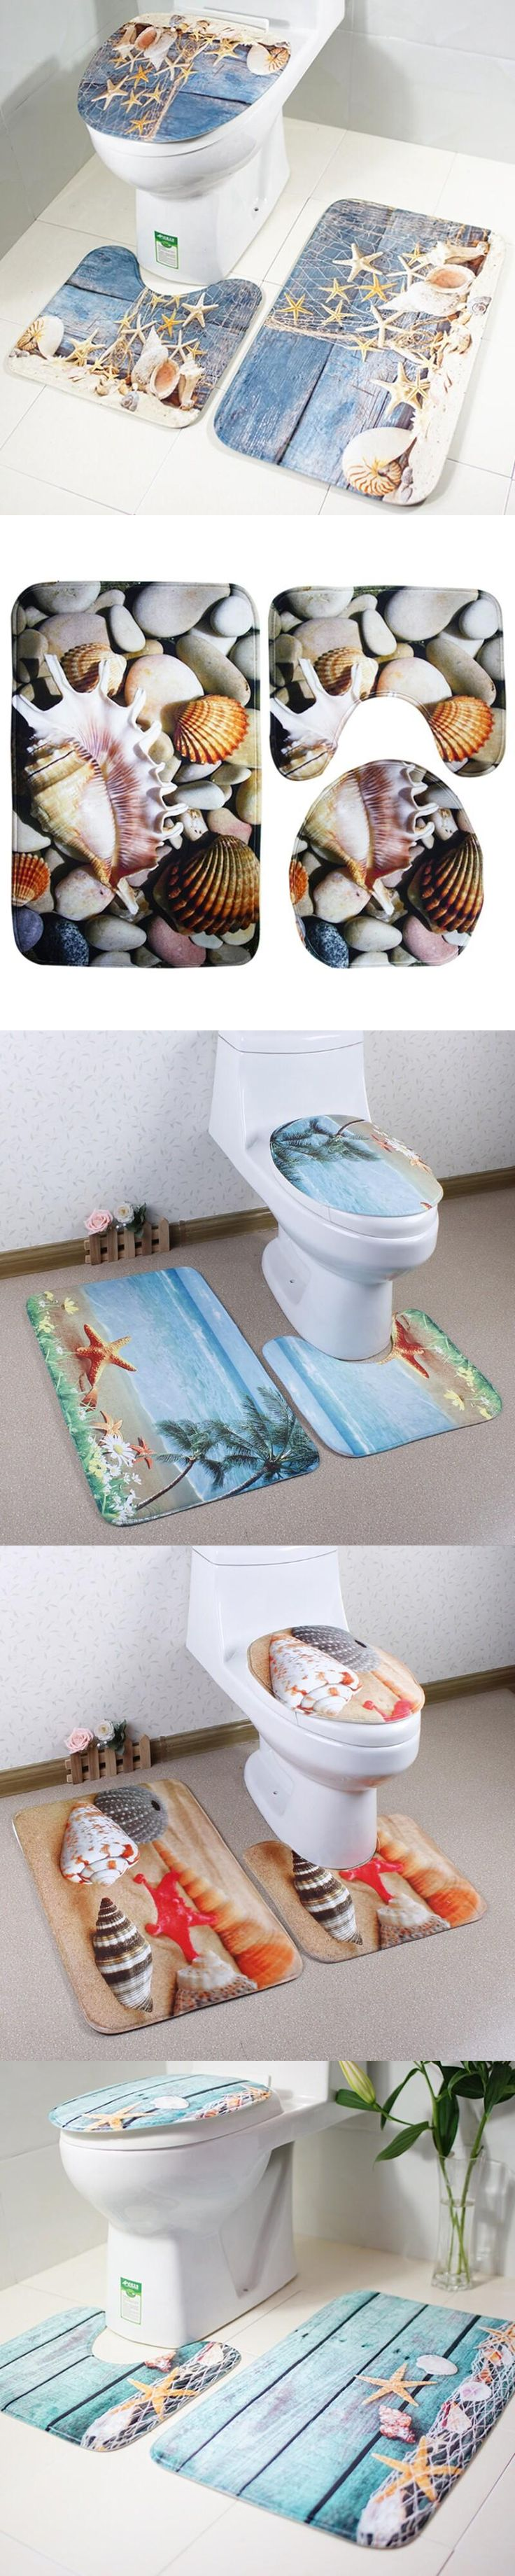 3 pieces/set Beautiful Ocean Scene Style Carpet Toilet Mat for Three Sets of Bath Mat for Bathroom